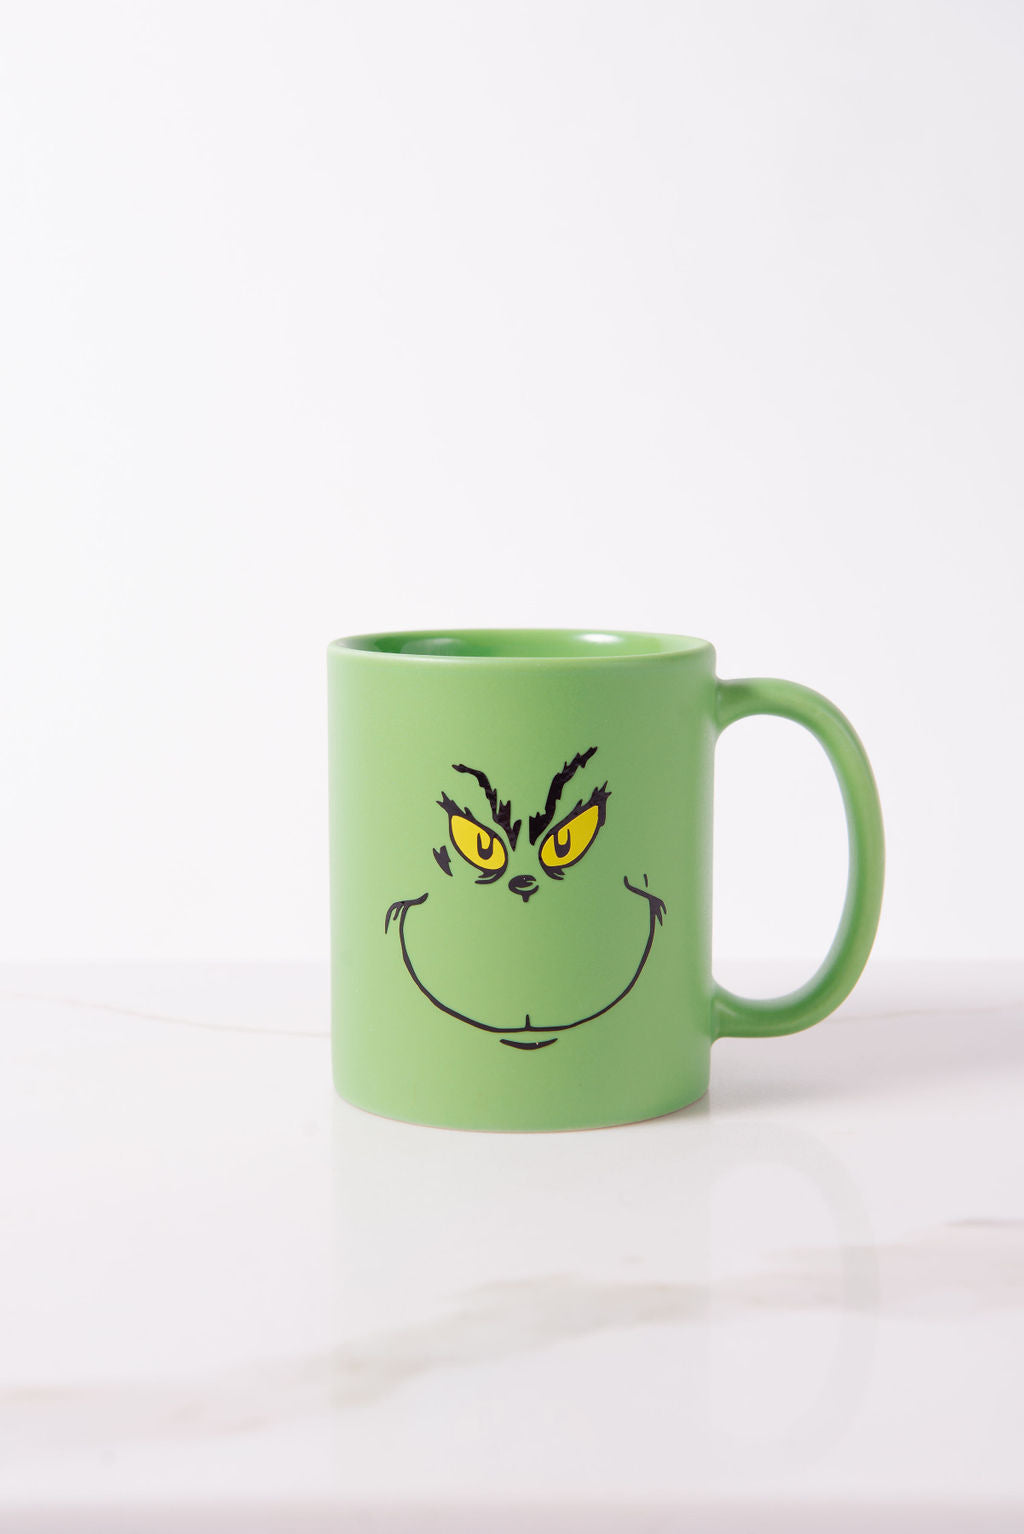 You're A Mean One Mr. Grinch Mug